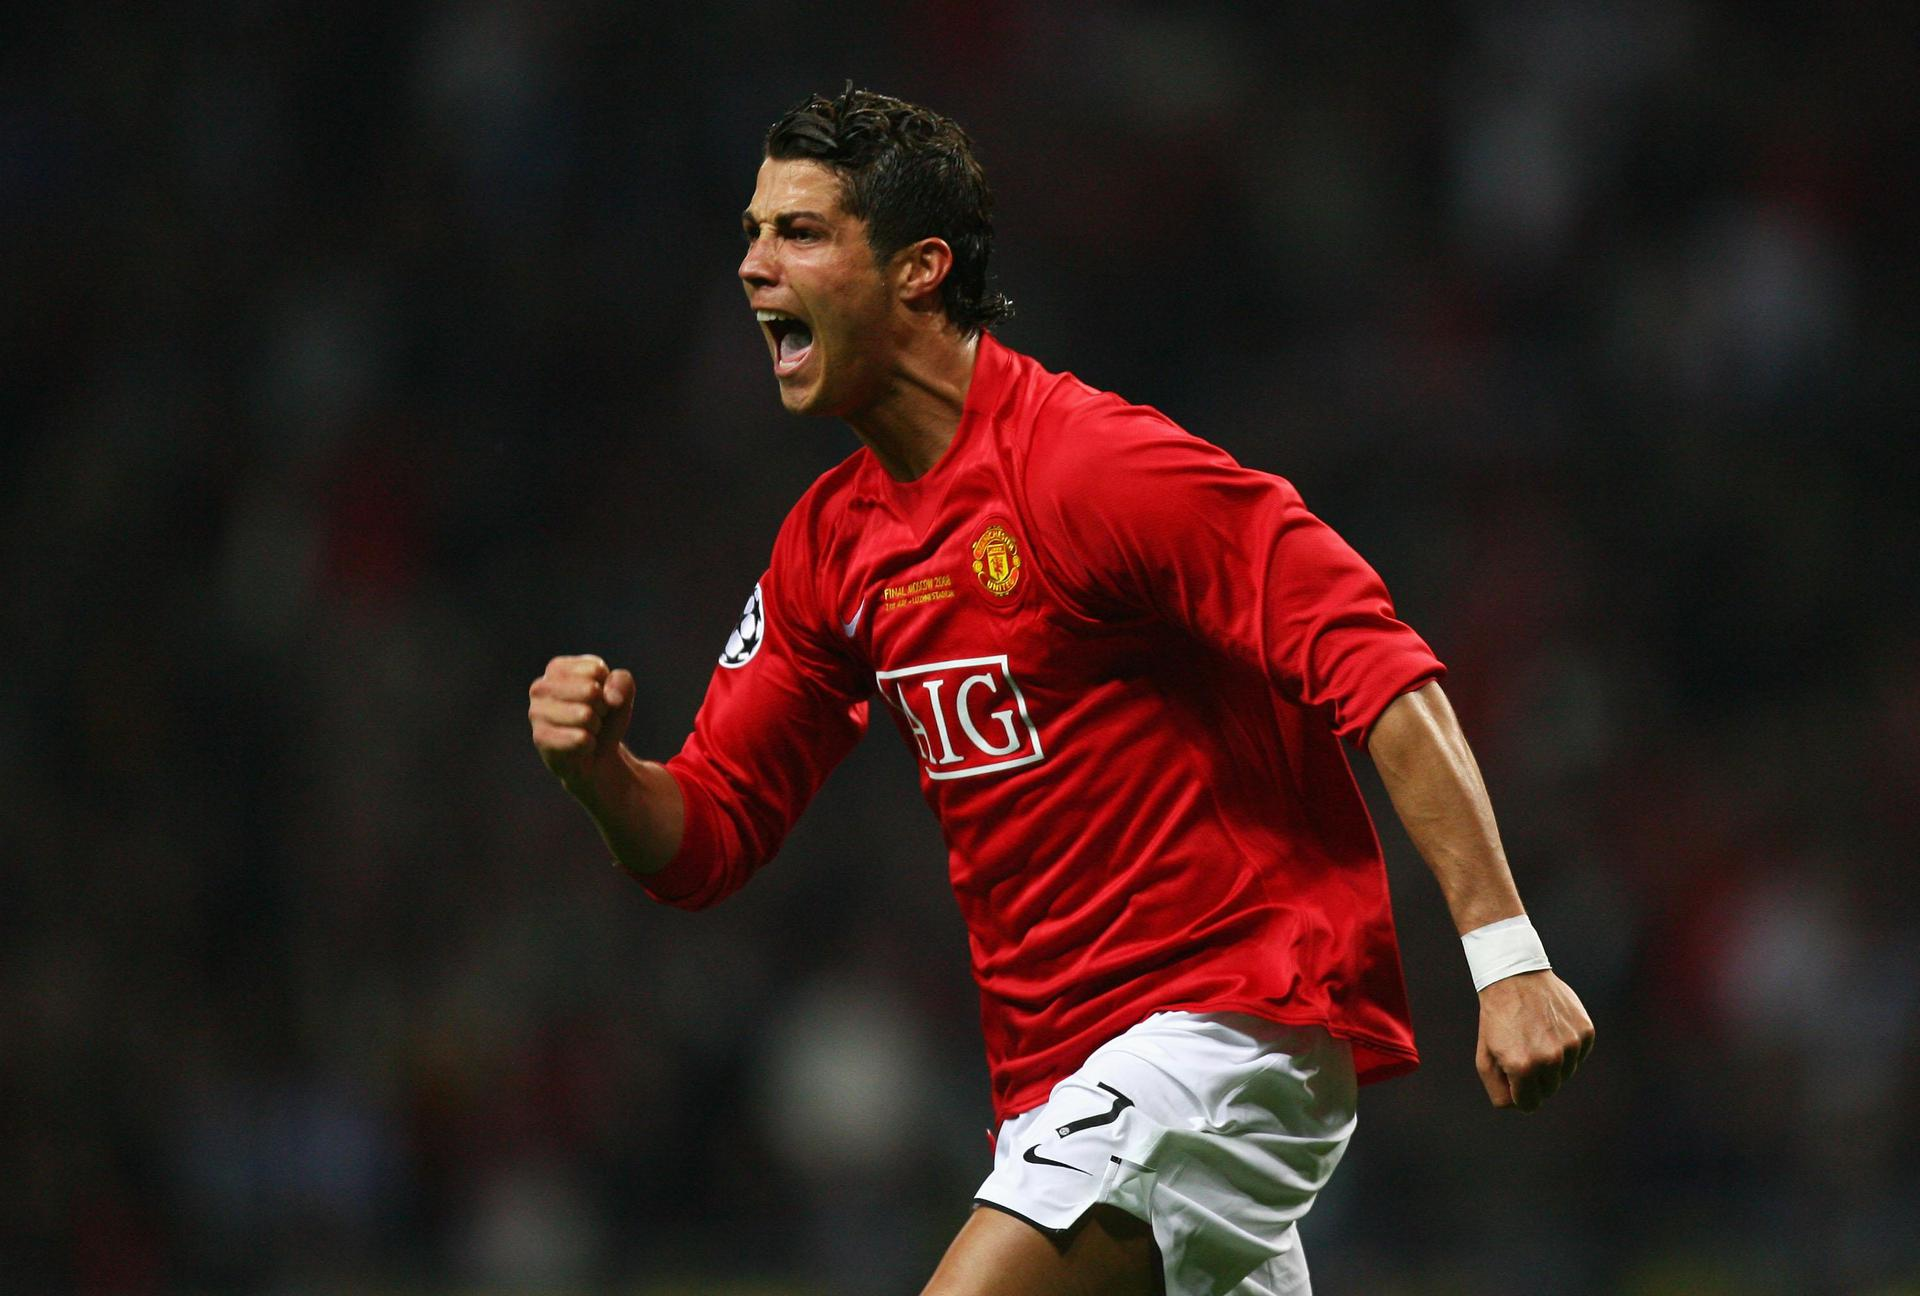 Gallery Champions League Final 2008 Manchester United